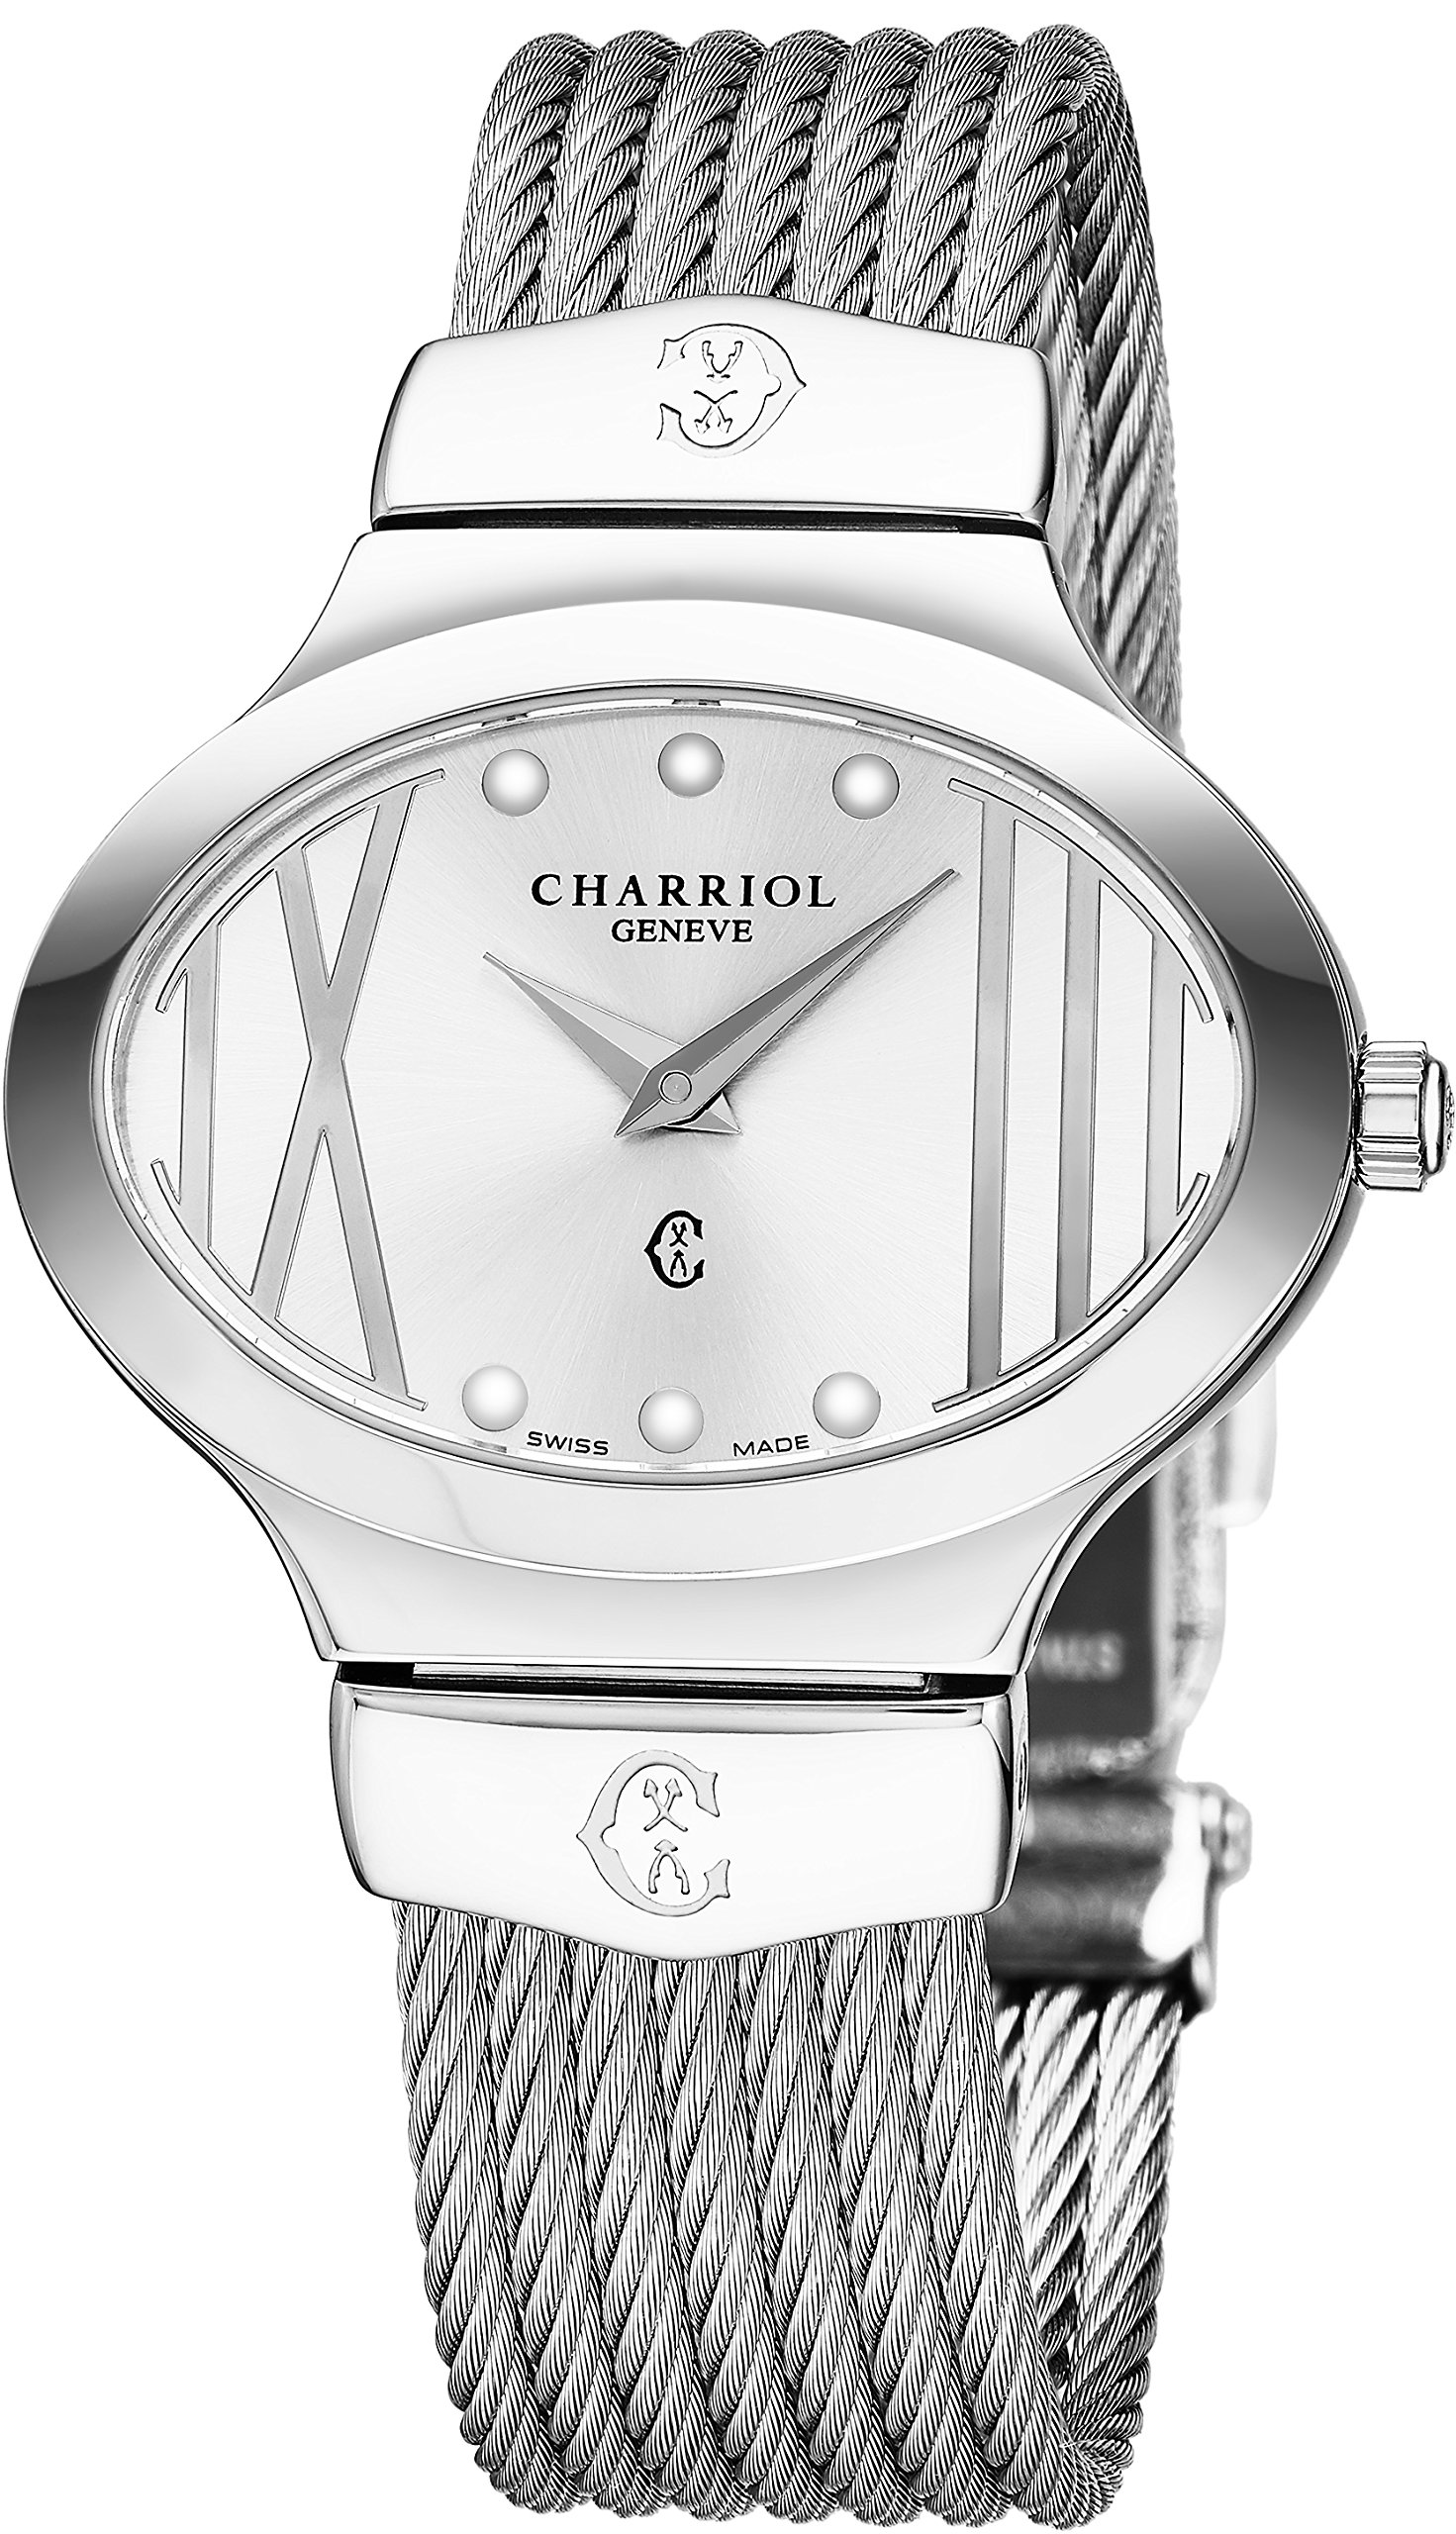 Charriol Darling Oval Womens Stainless Steel Silver Watch - Quartz Analog Silver Face with Sapphire Crystal Metal Band Dress Watch - Luxury Swiss Made Watches for Women OVAL.541.OV004